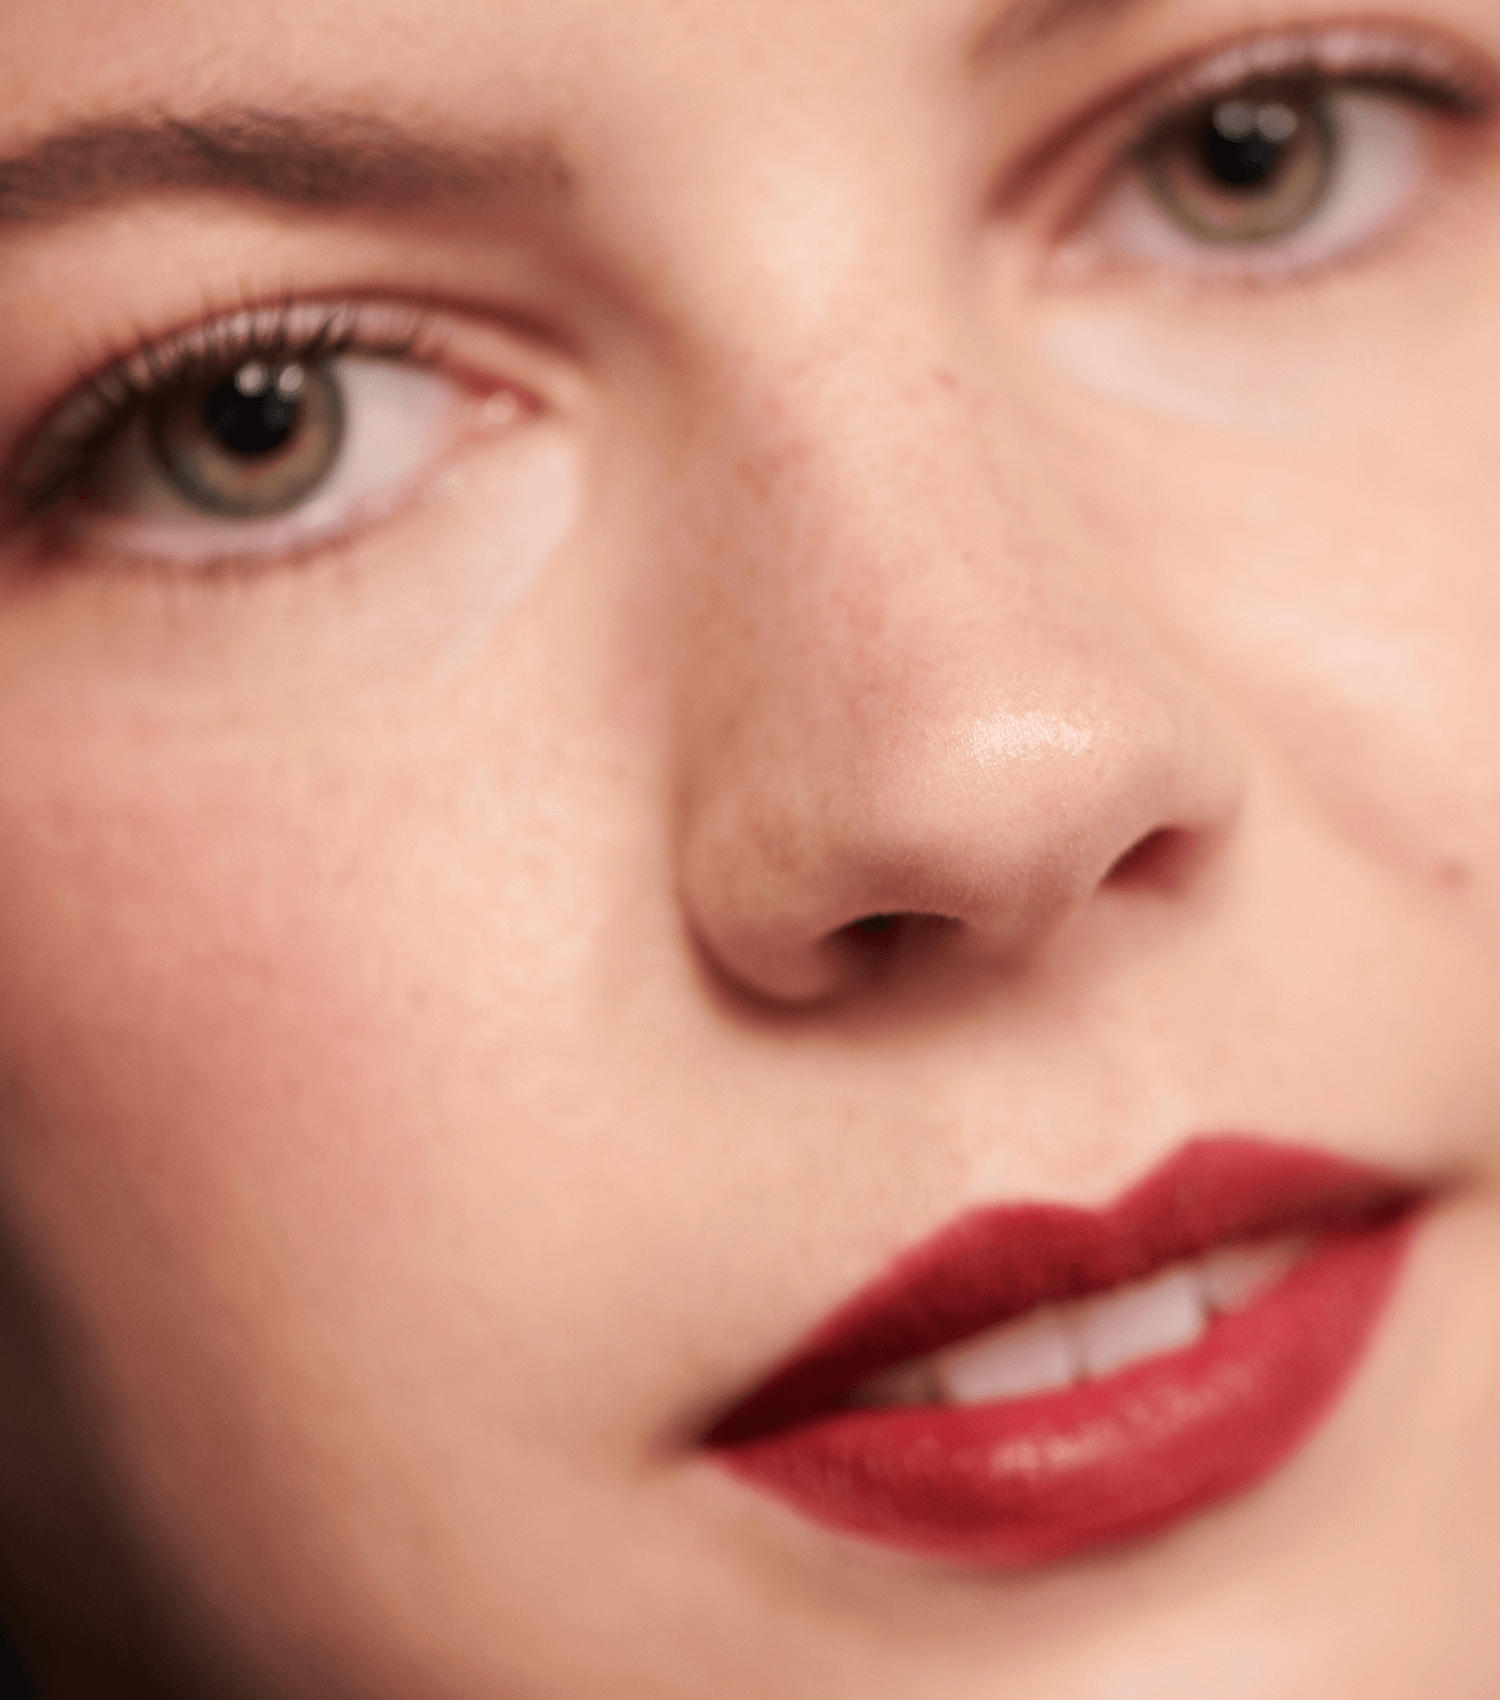 Model wearing dark red lipstick